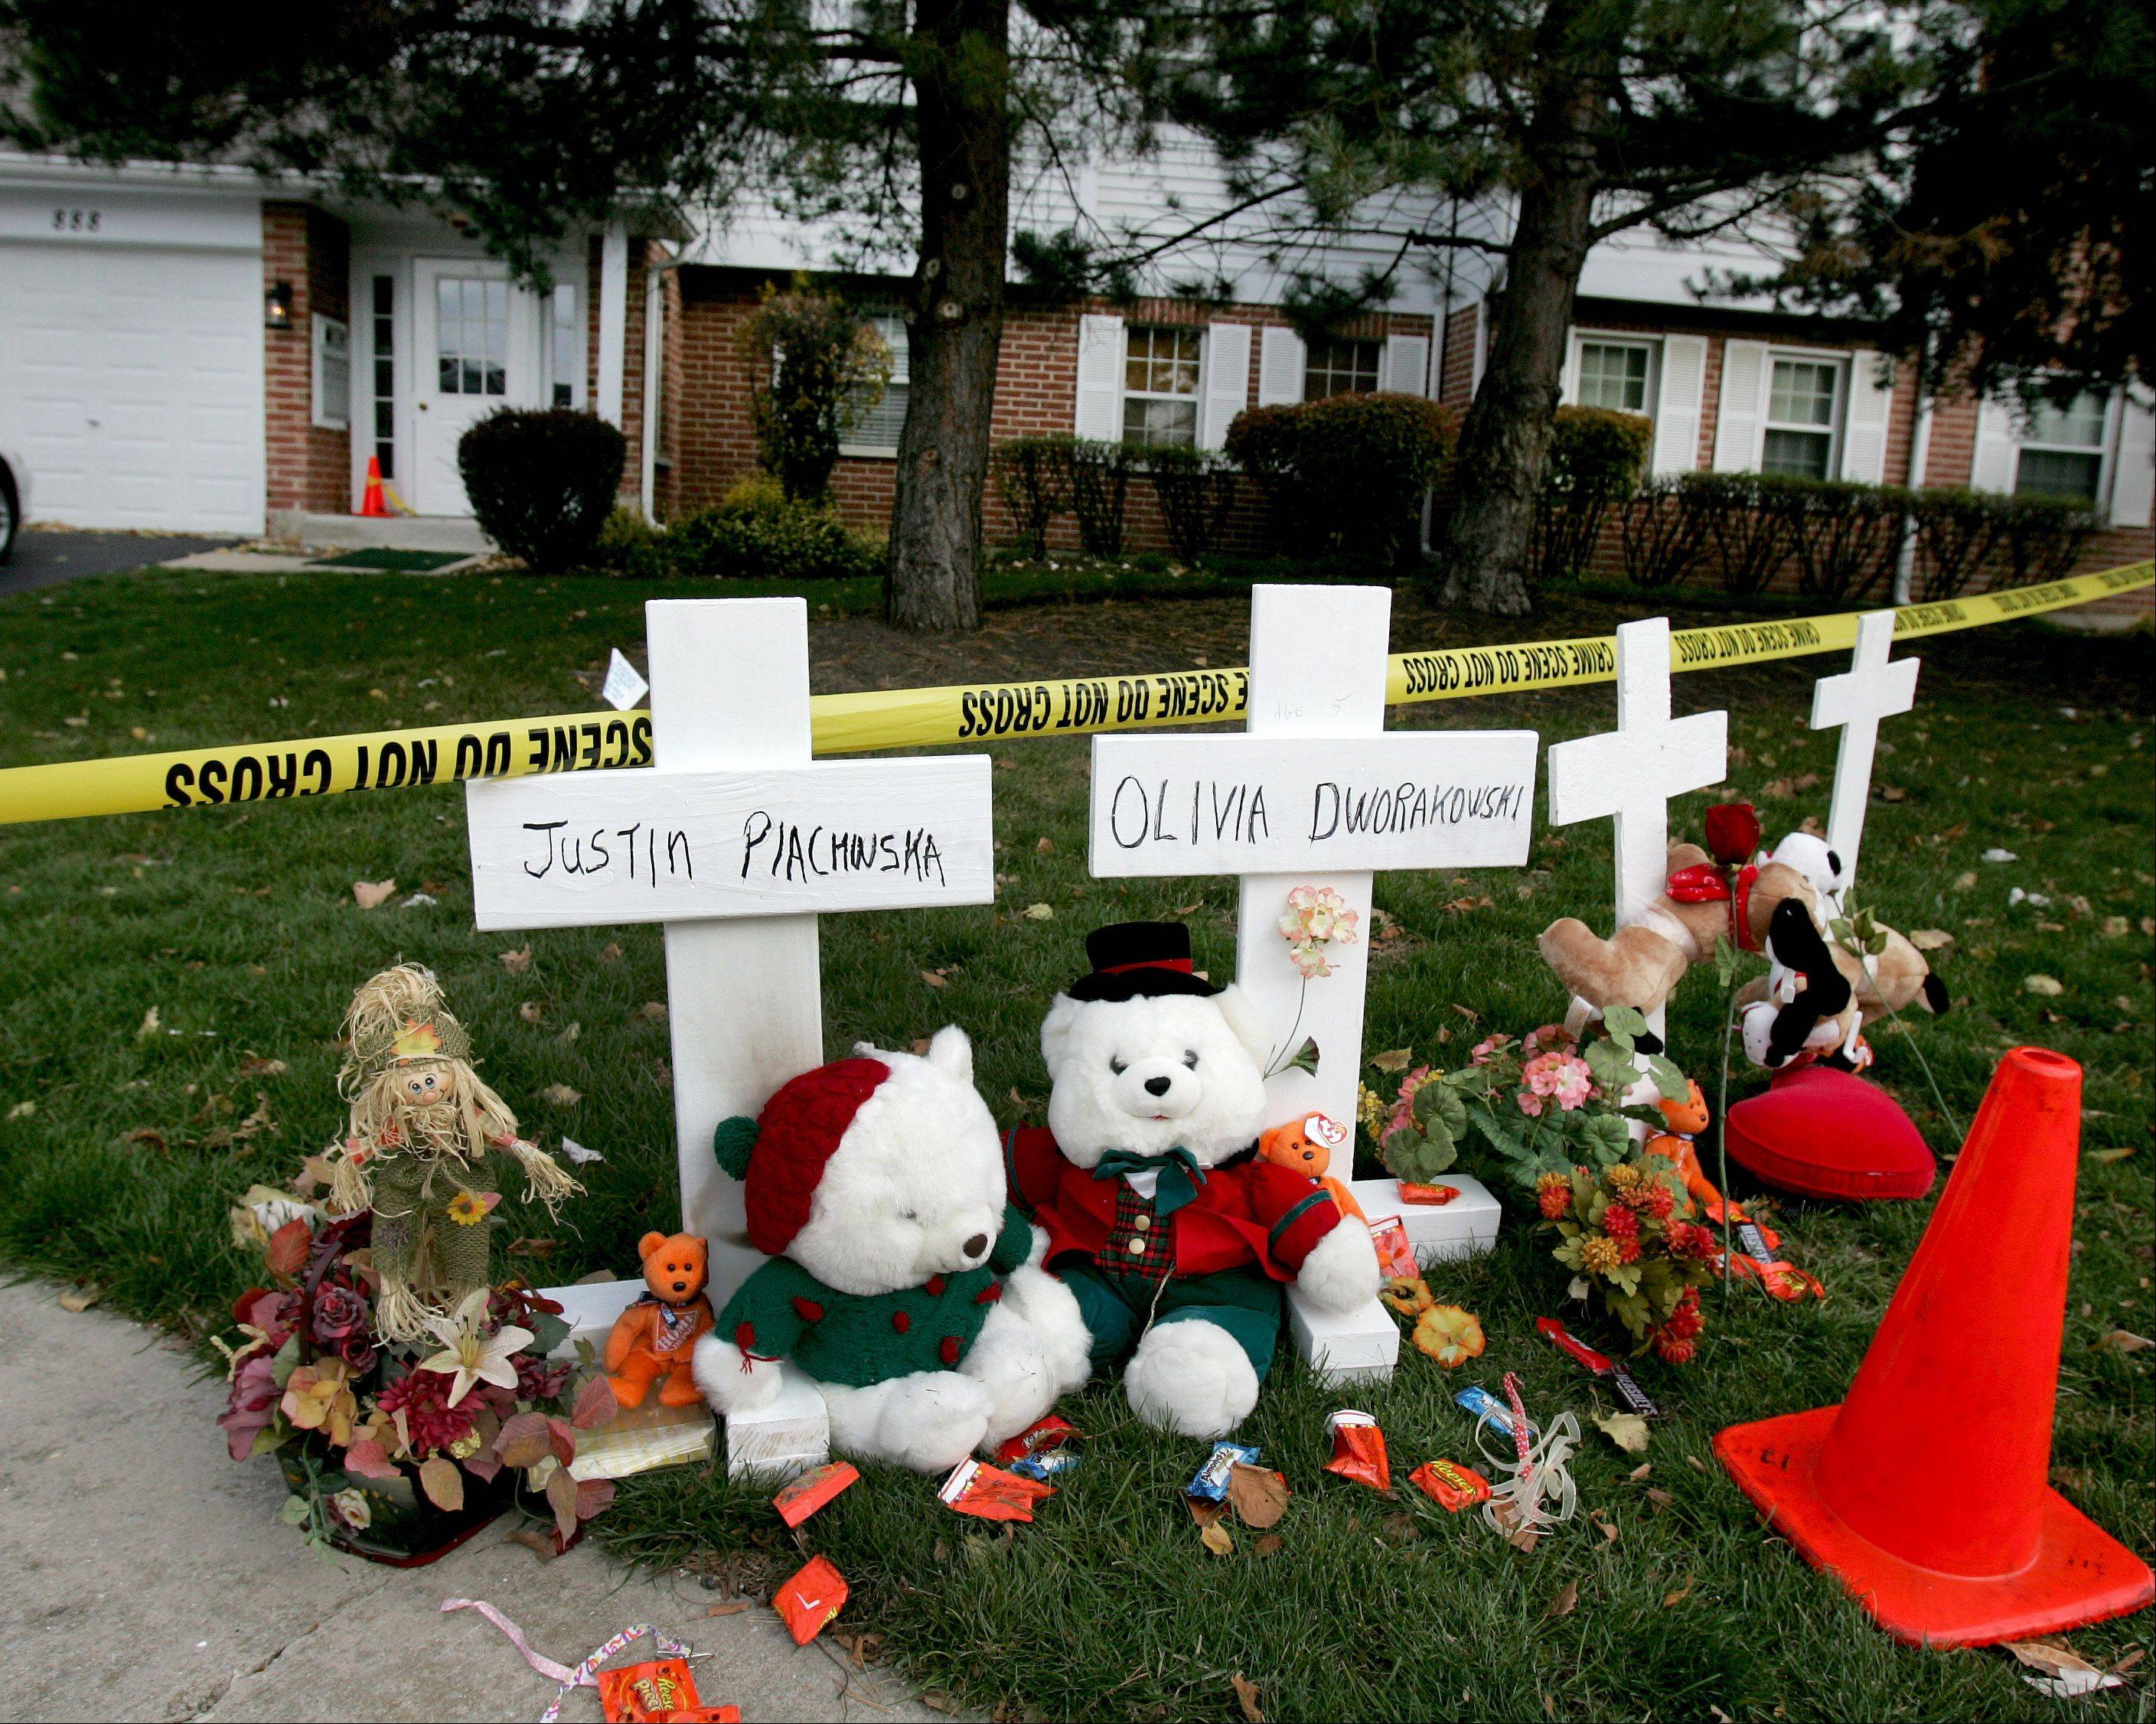 Horrific details emerge in Naperville child slayings